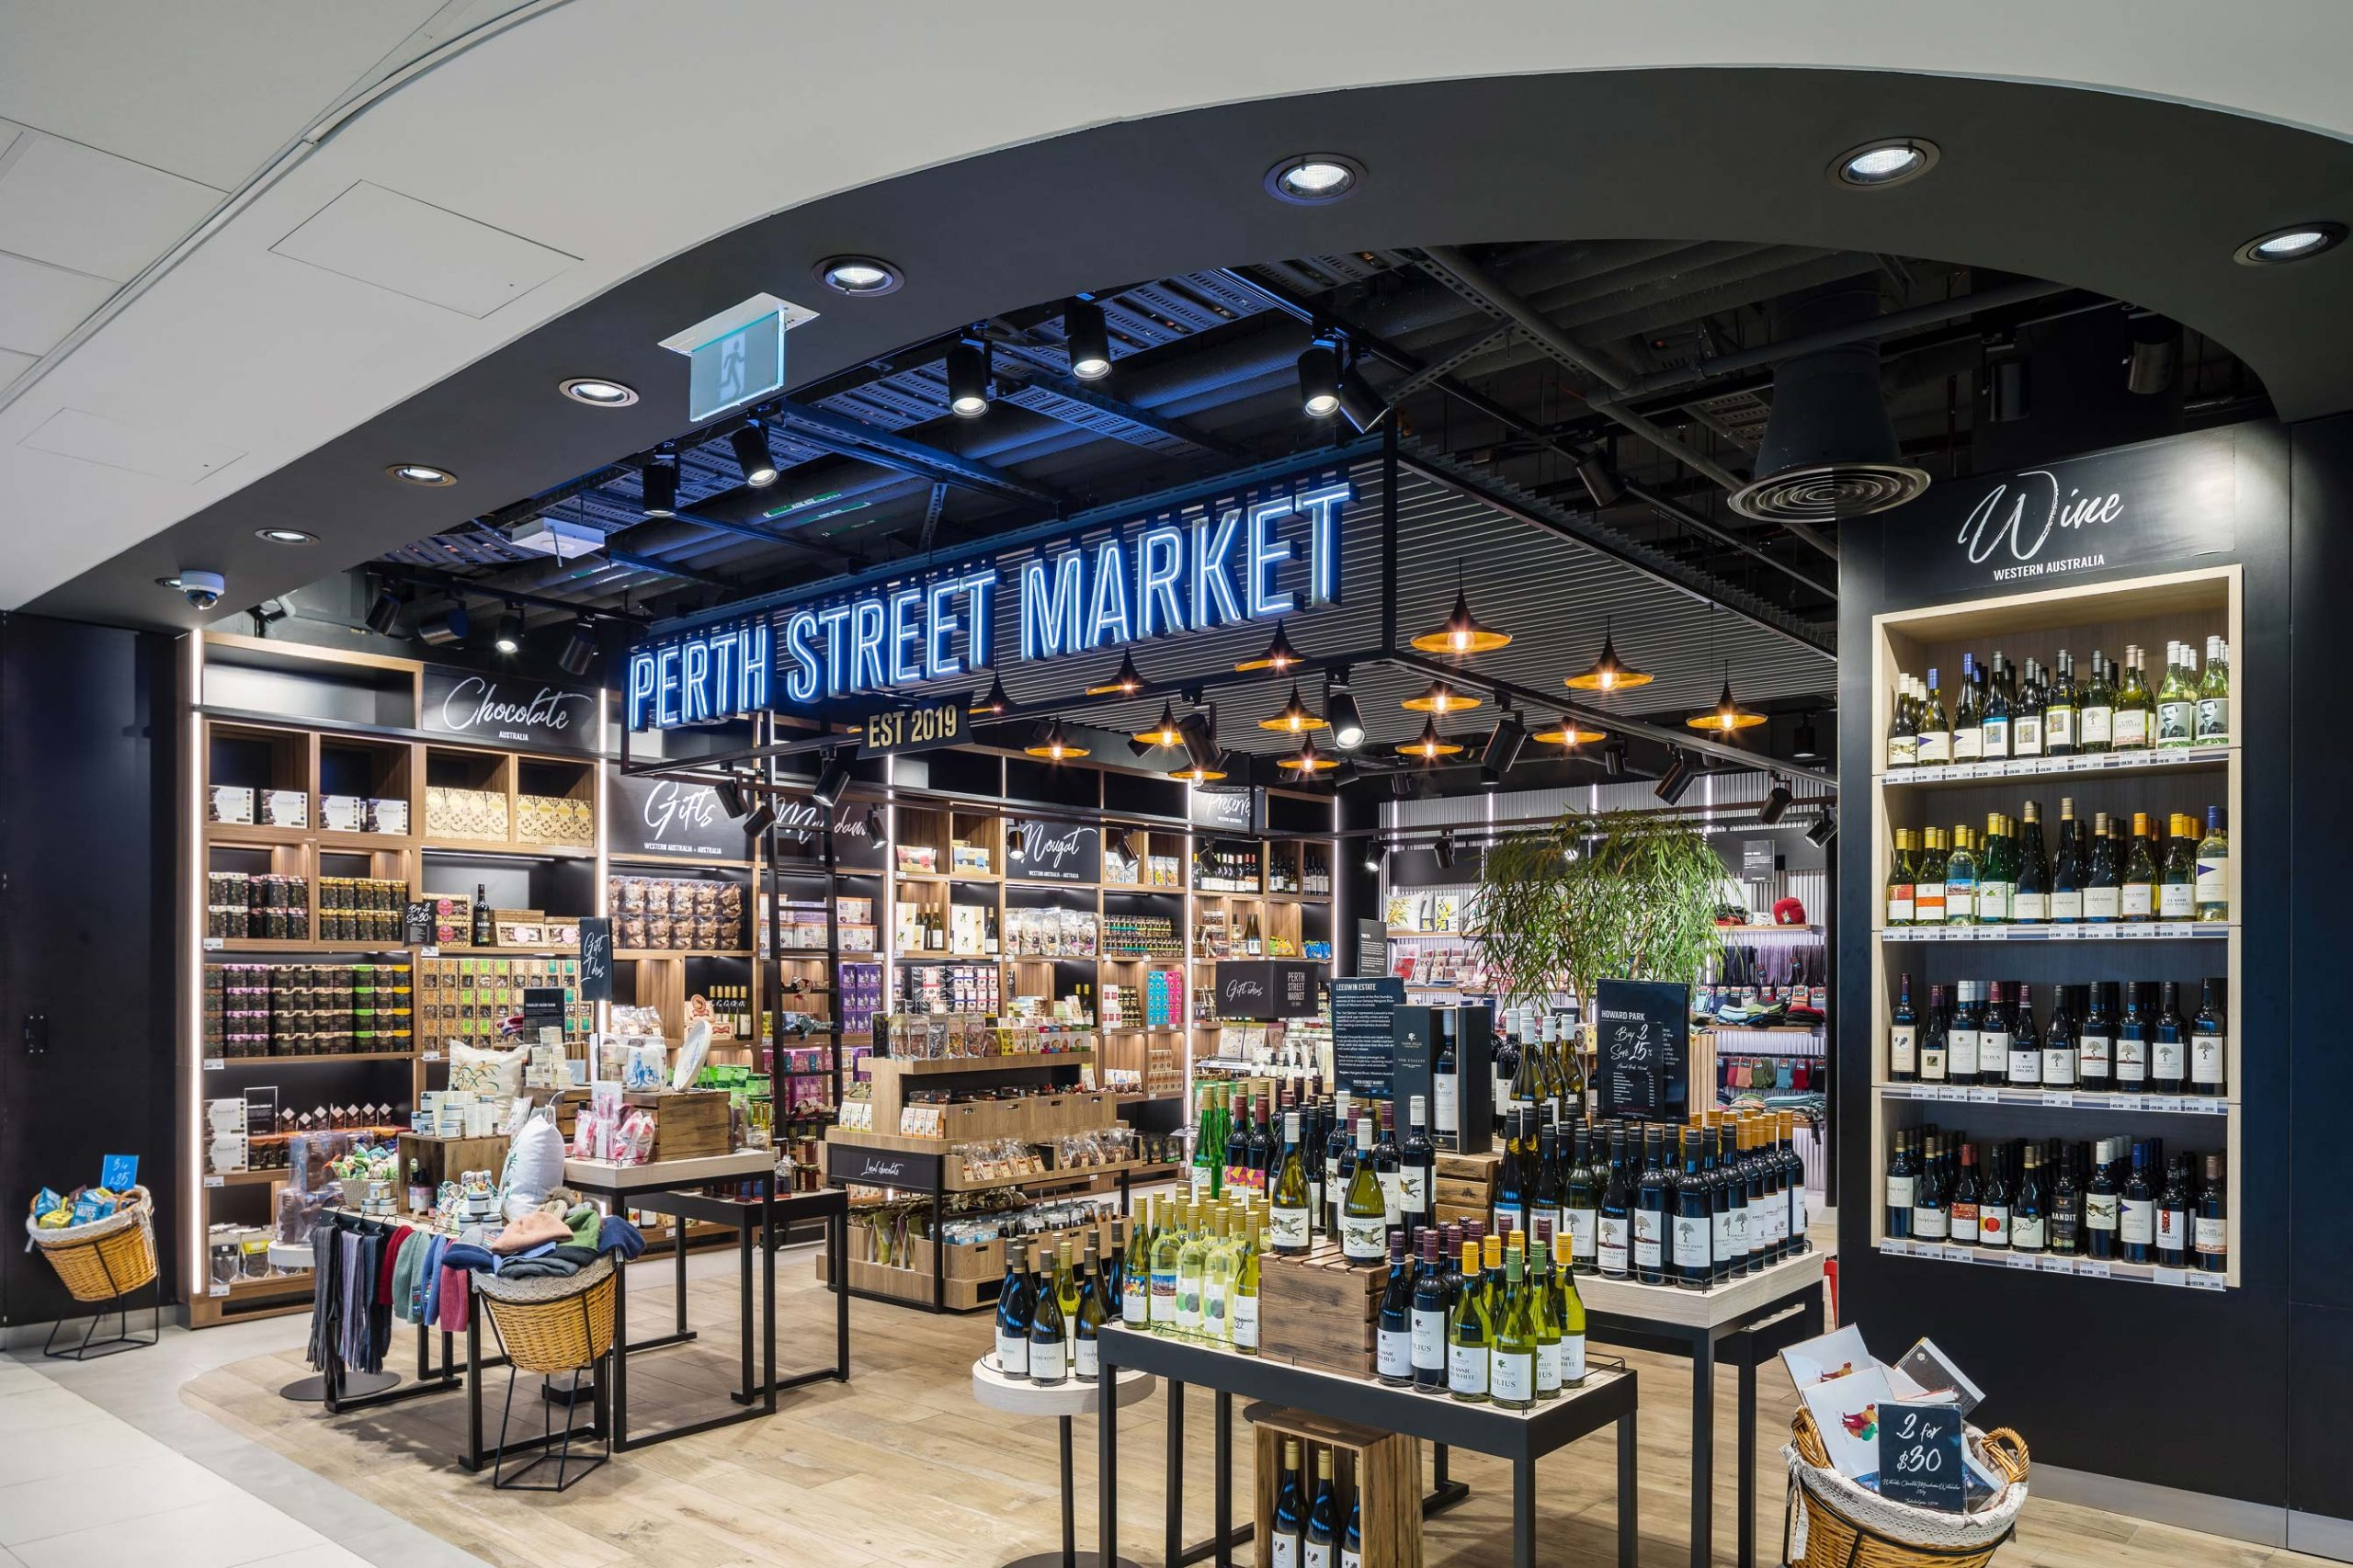 Australian themed Duty Free shop at Perth International Airport with neon sign Perth Street Market